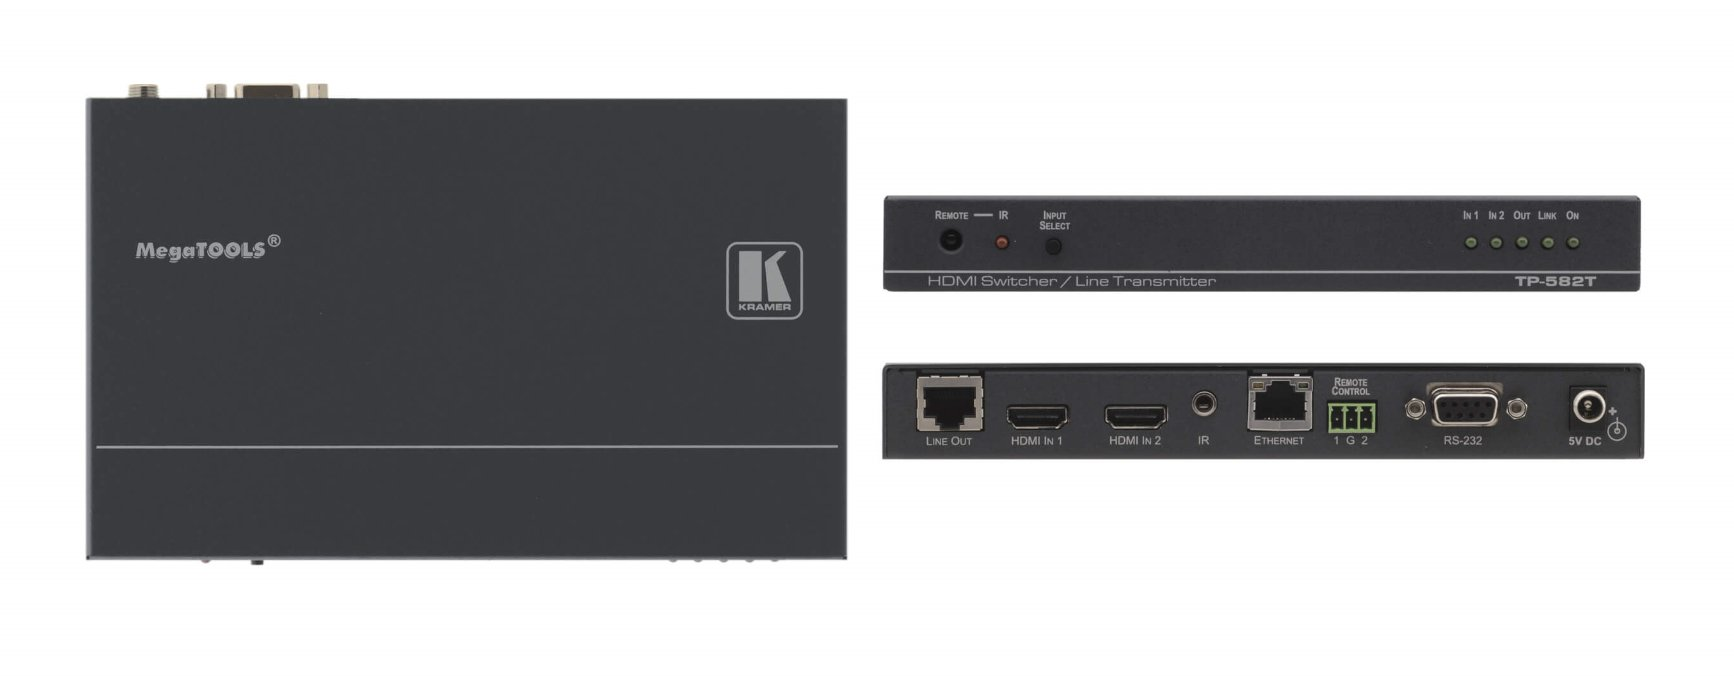 2x1 HDMI Plus Bidirectional RS-232, Ethernet & IR over Twisted Pair Switcher/Transmitter